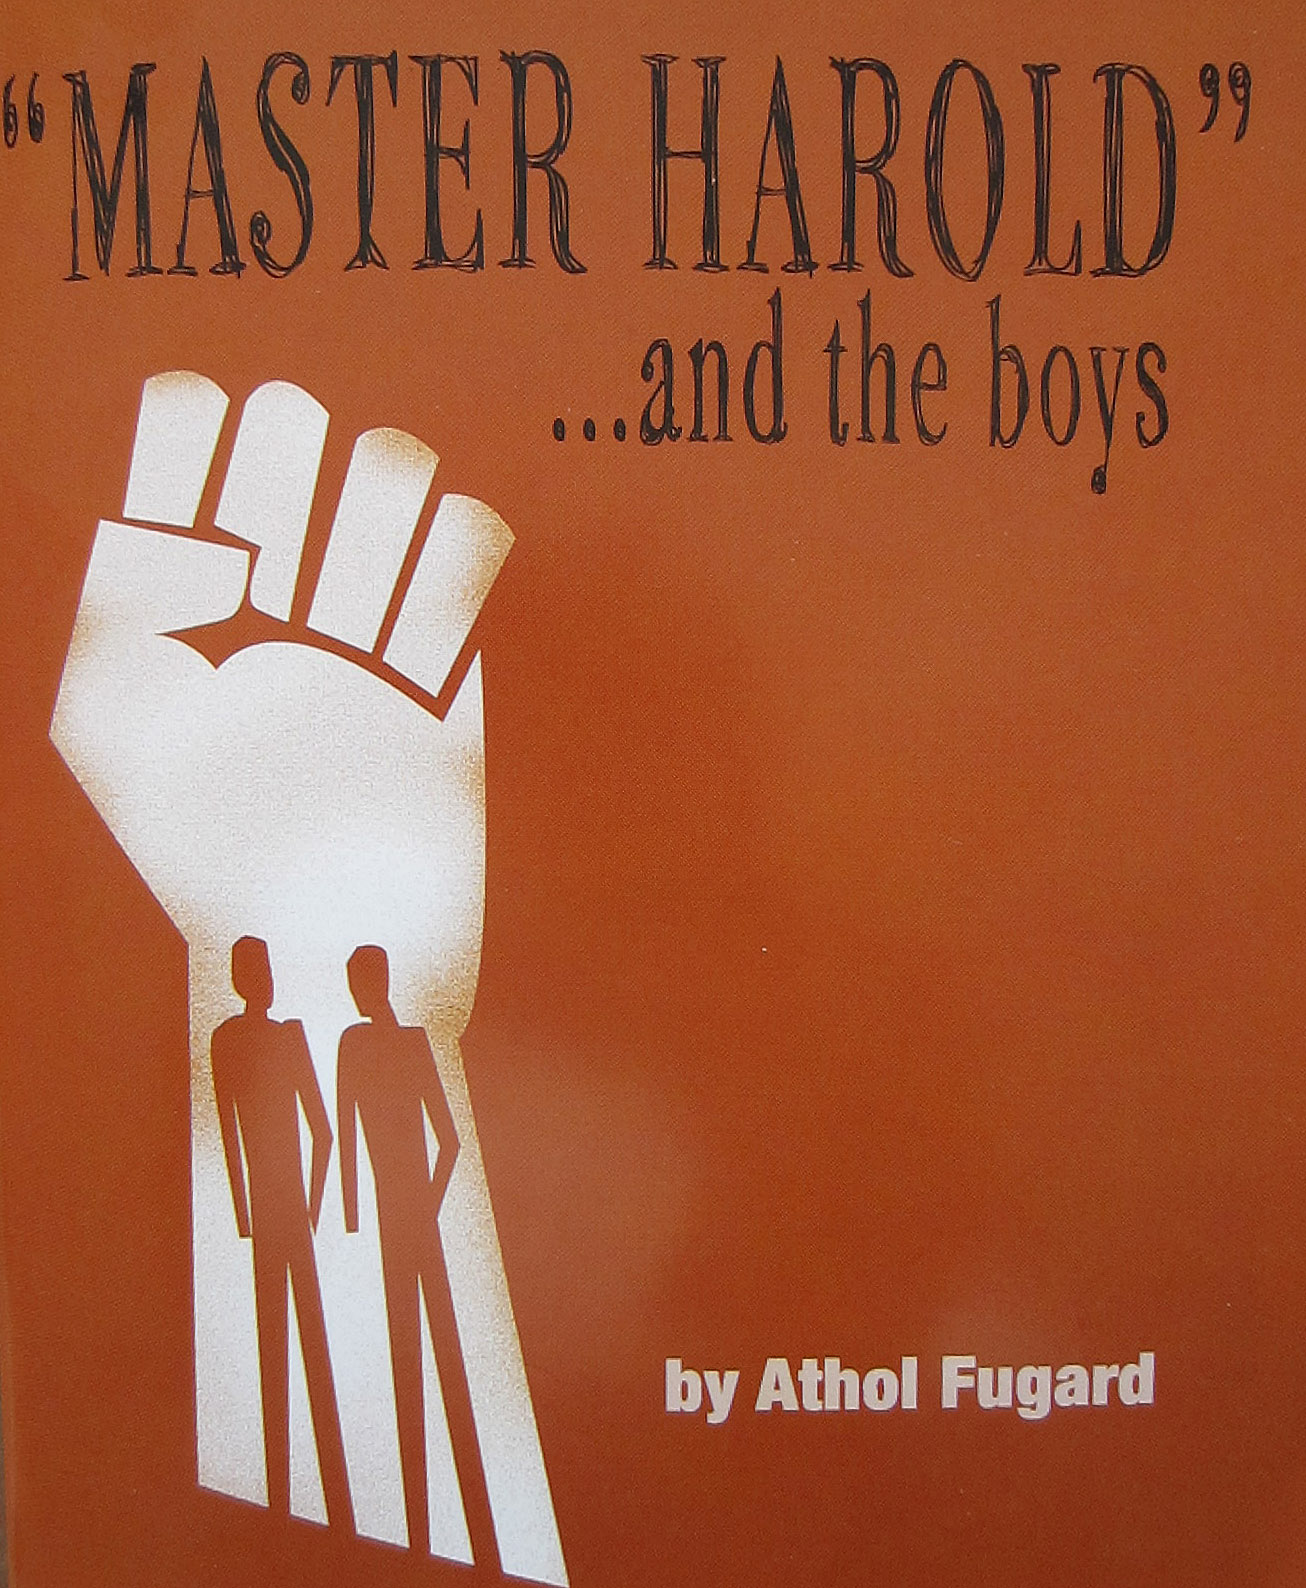 lacunae musing master harold and the boys triumphs at dramaworks dramaworks has produced yet another classic in keeping its mission statement of theatre